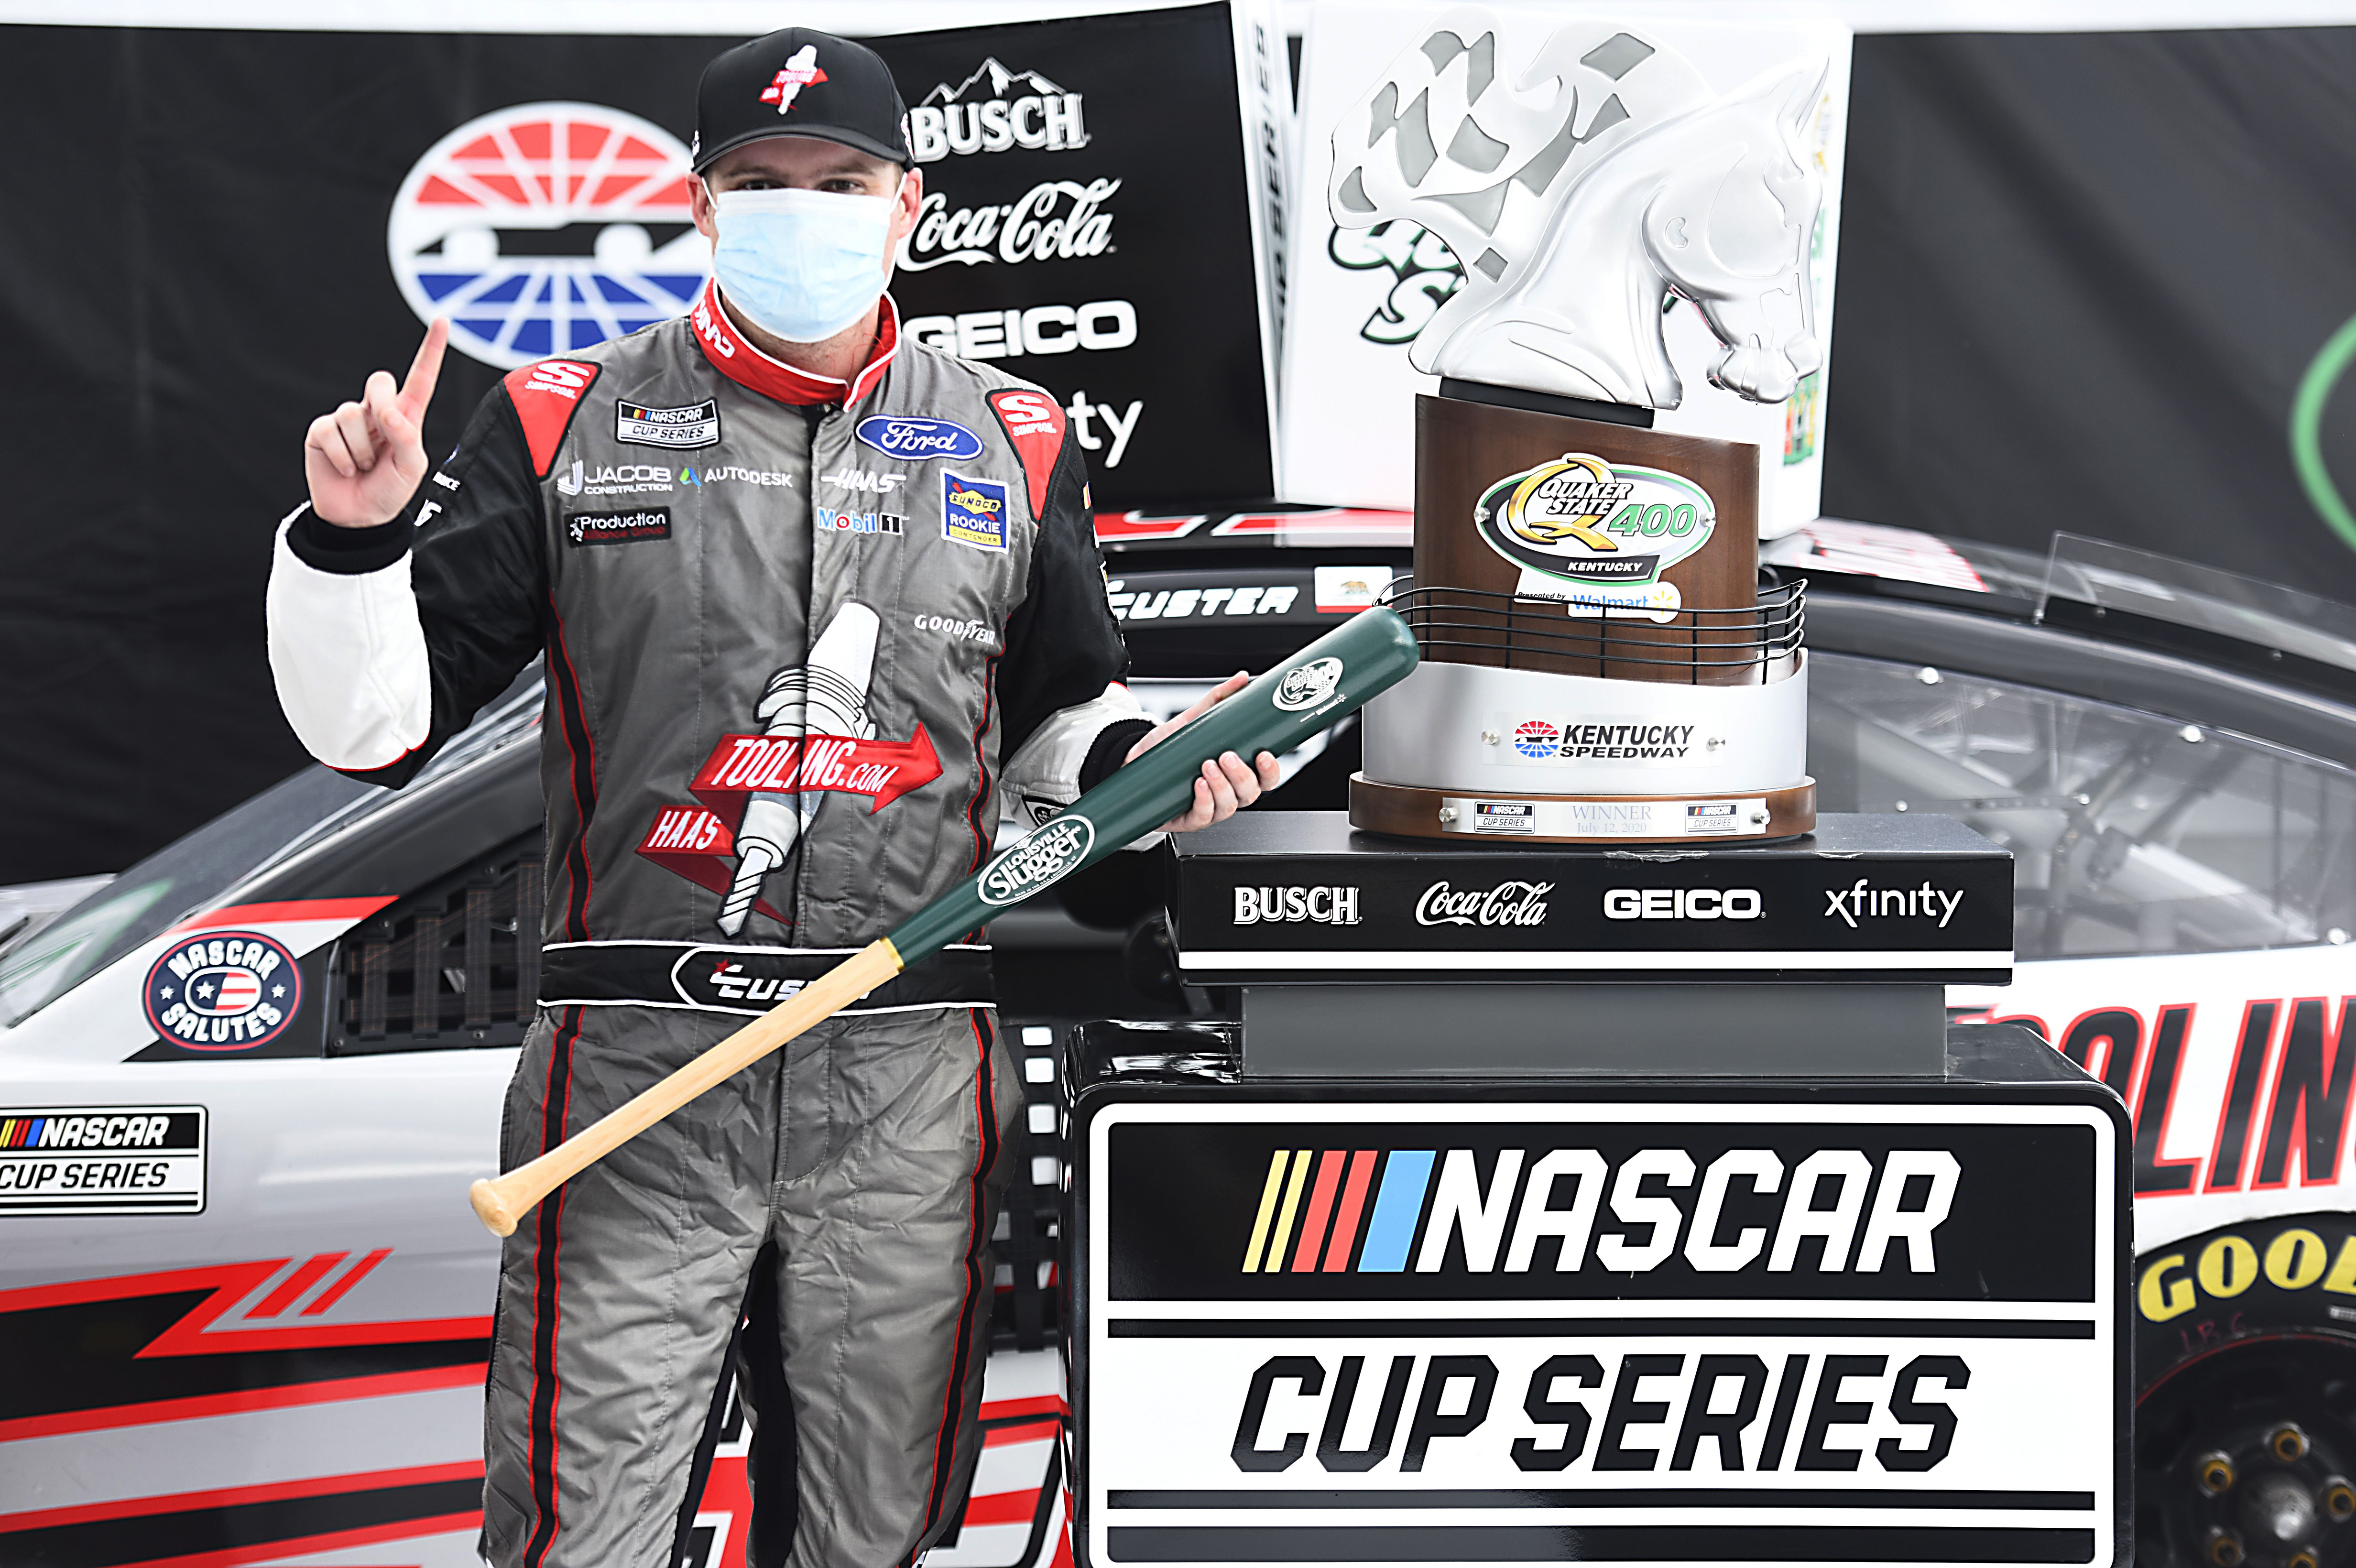 HaasTooling.com Ford driver Cole Custer celebrates in Victory Lane after winning the NASCAR Cup Series Quaker State 400 Presented by Walmart